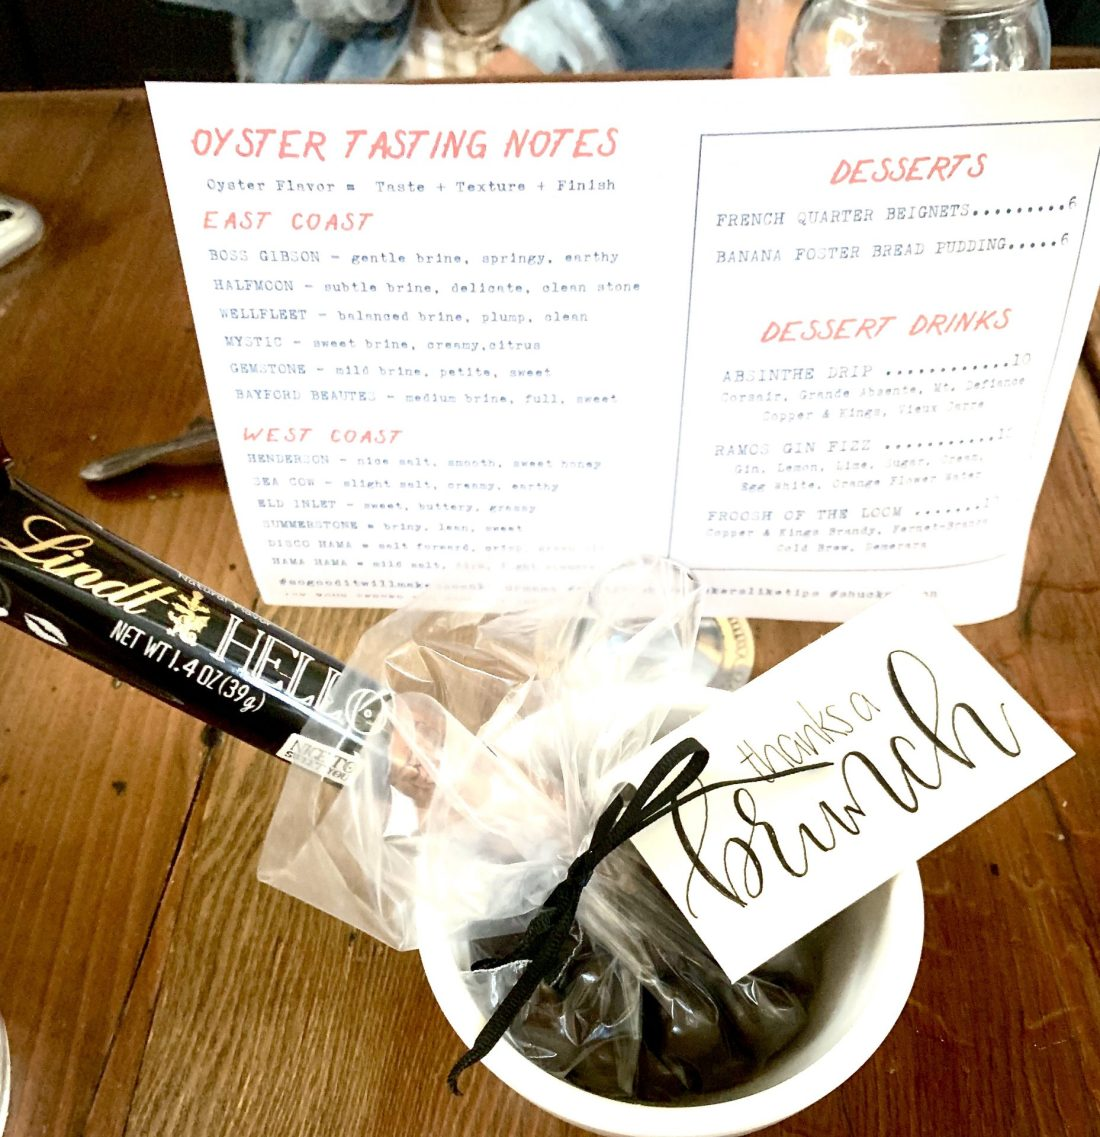 Brunch gift including a Lindt chocolate in front of an oyster menu